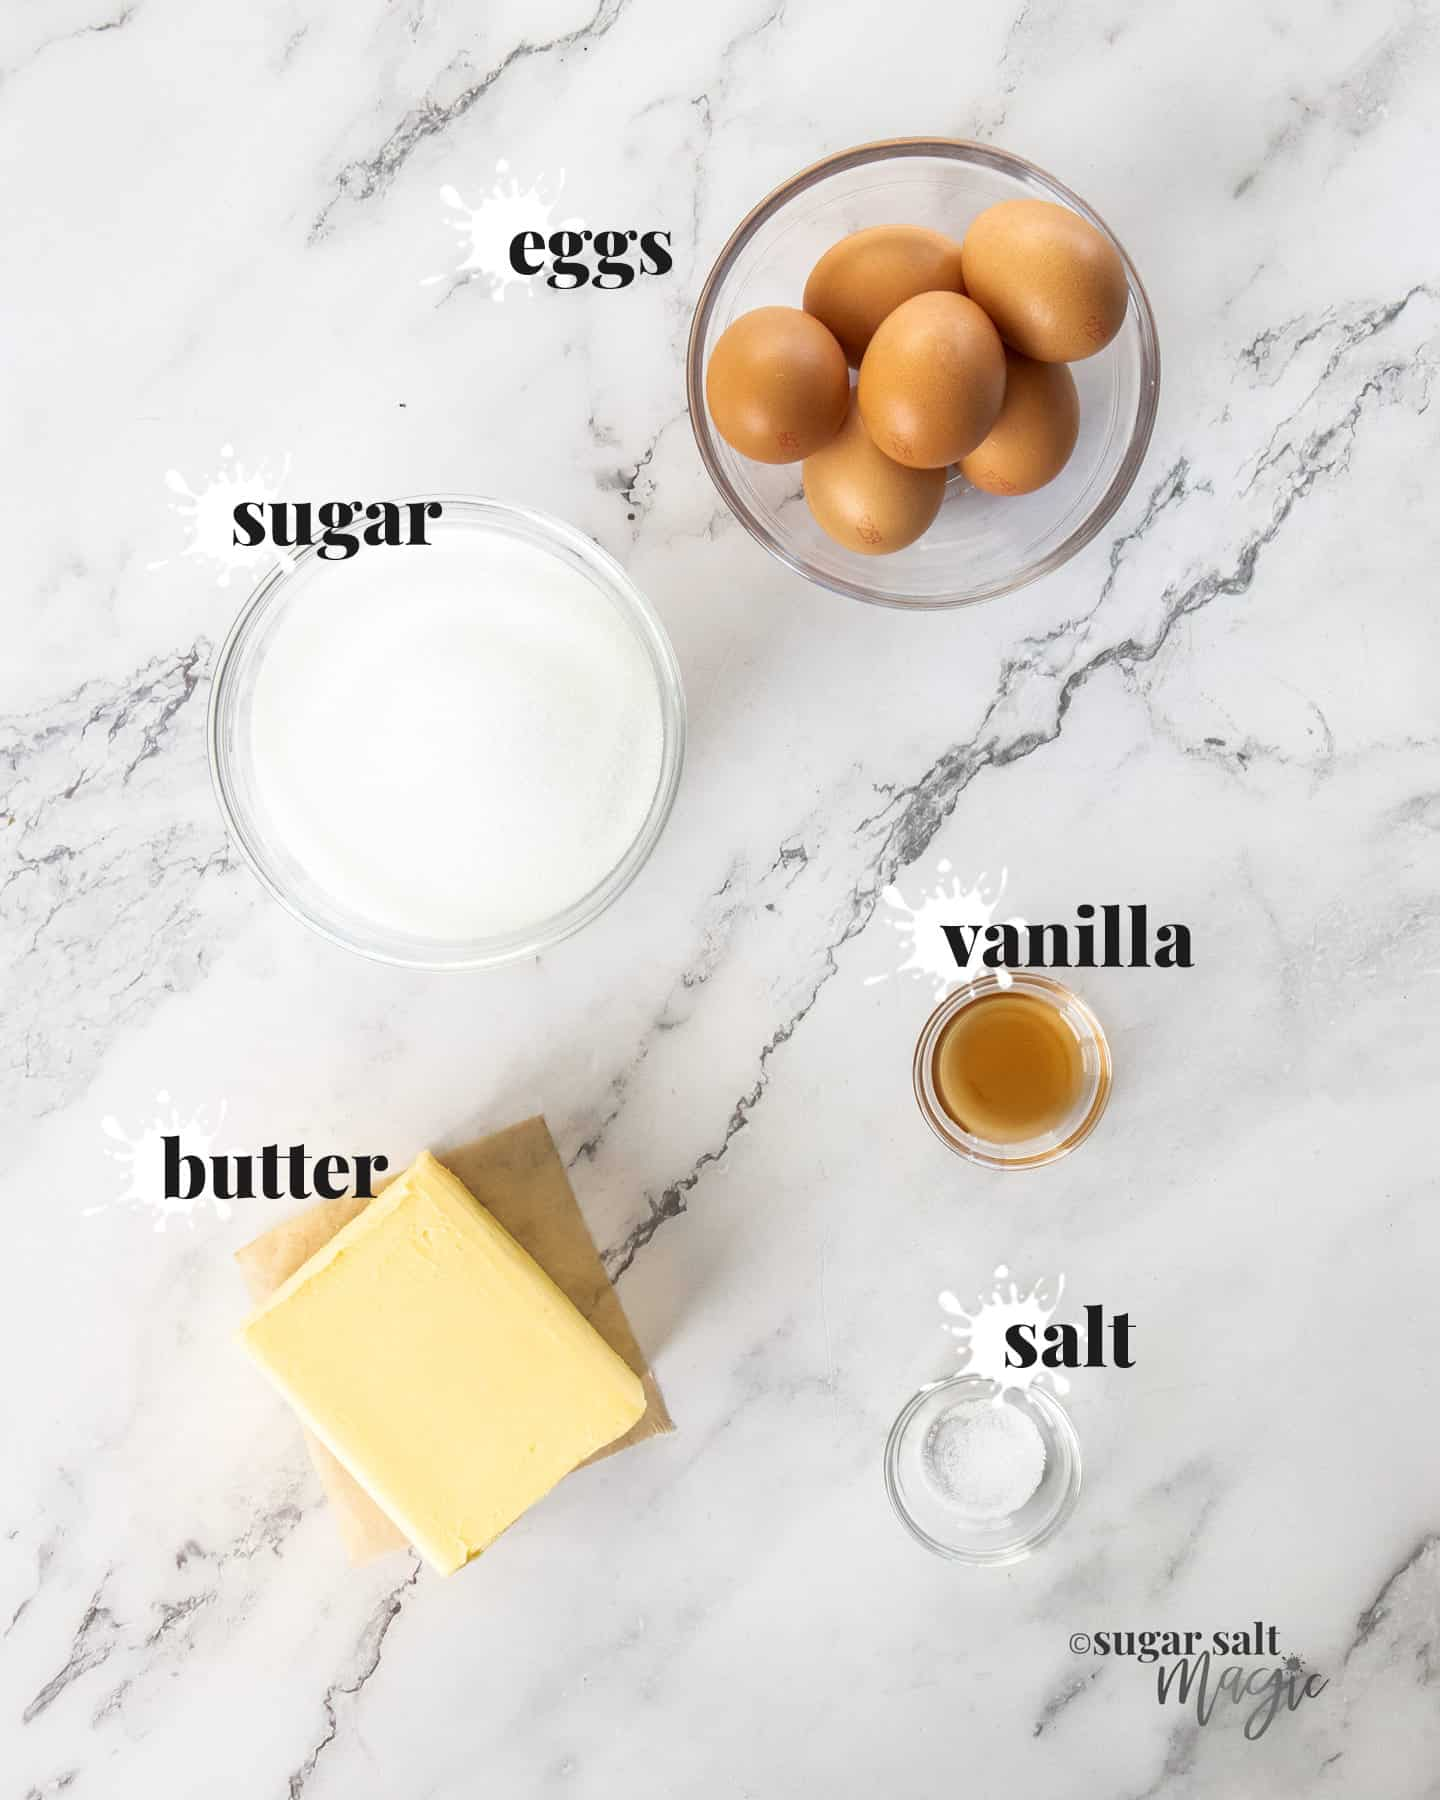 Ingredients for vanilla swiss meringue buttercream on a marble surface.